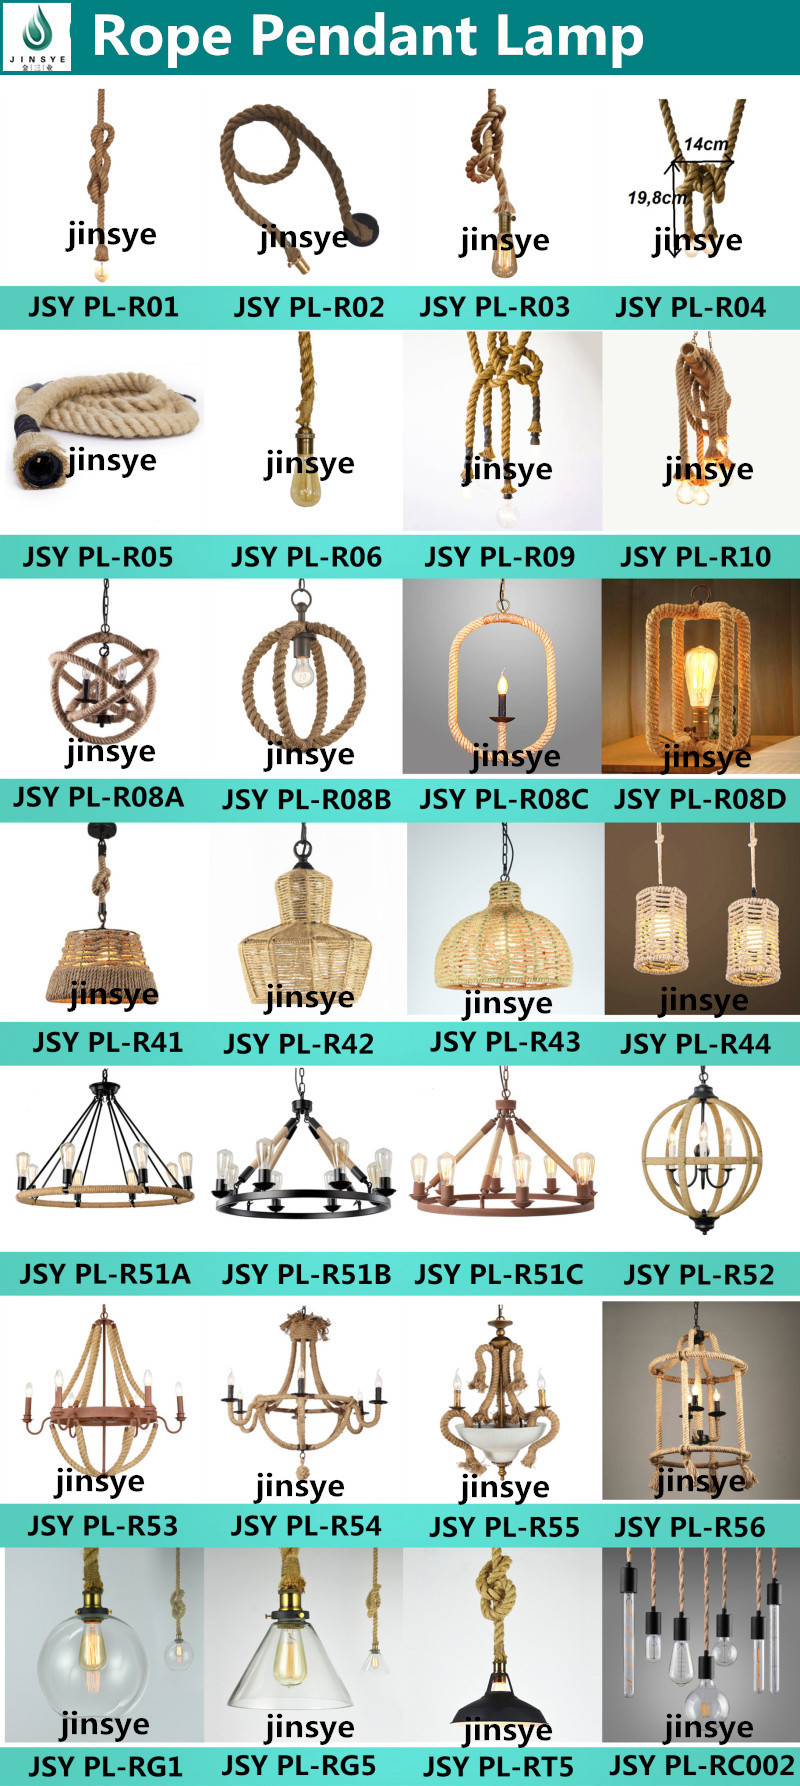 6.Rope Pendant Lamp